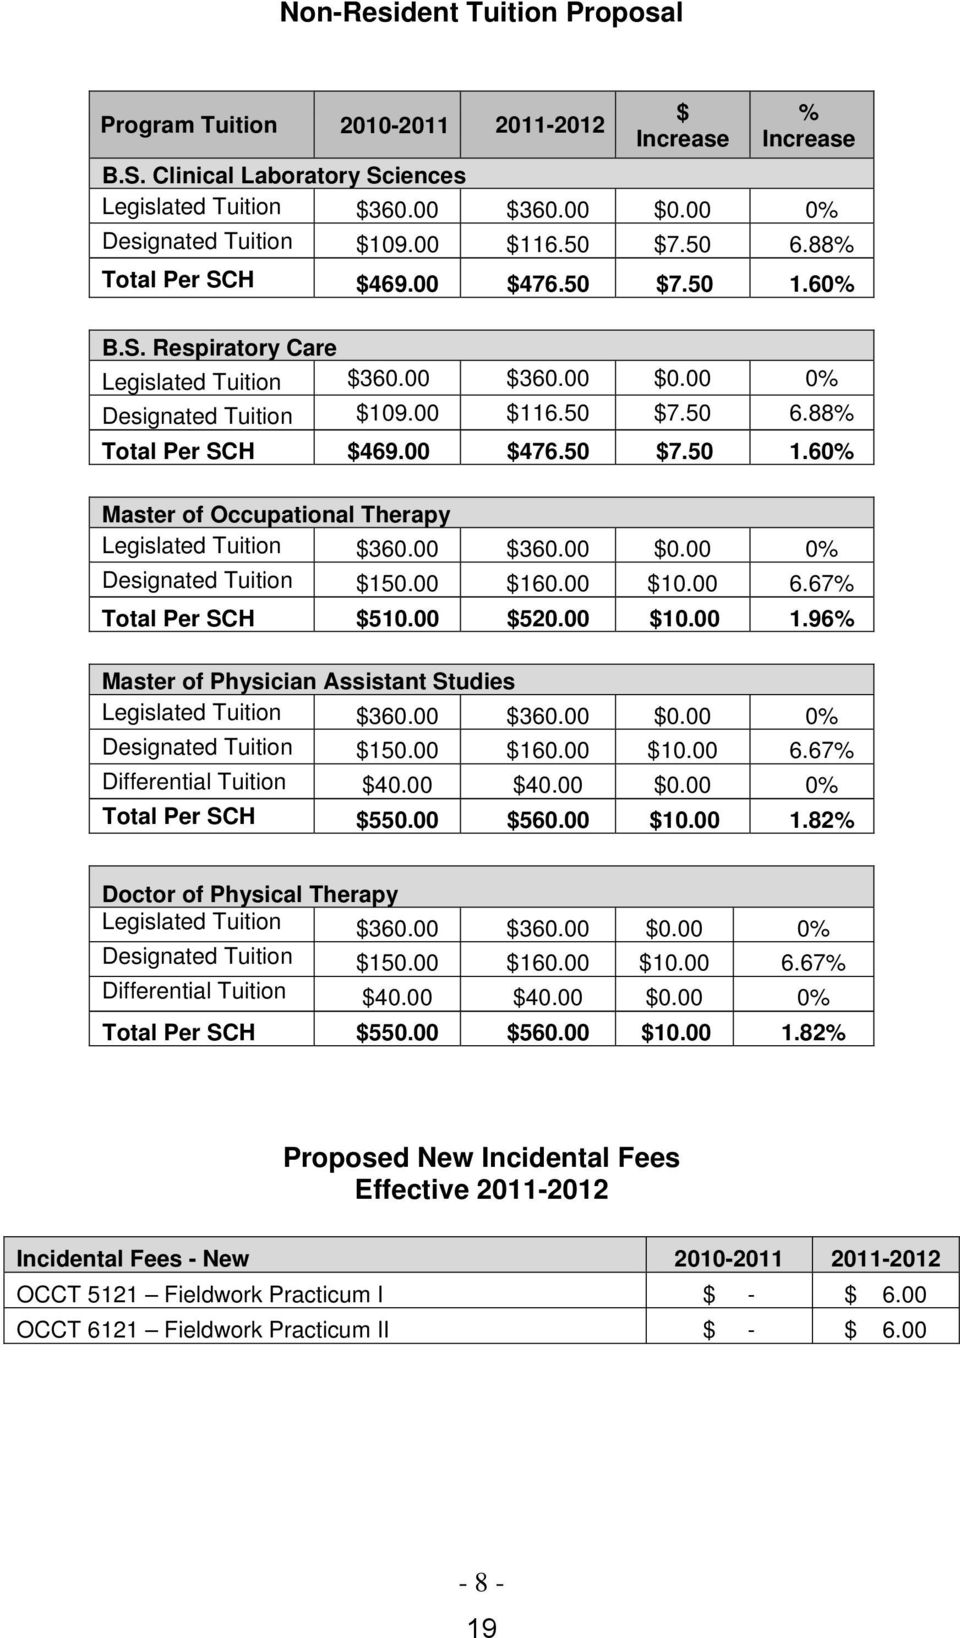 00 $360.00 $0.00 0% Designated Tuition $150.00 $160.00 $10.00 6.67% Total Per SCH $510.00 $520.00 $10.00 1.96% Master of Physician Assistant Studies Legislated Tuition $360.00 $360.00 $0.00 0% Designated Tuition $150.00 $160.00 $10.00 6.67% Differential Tuition $40.